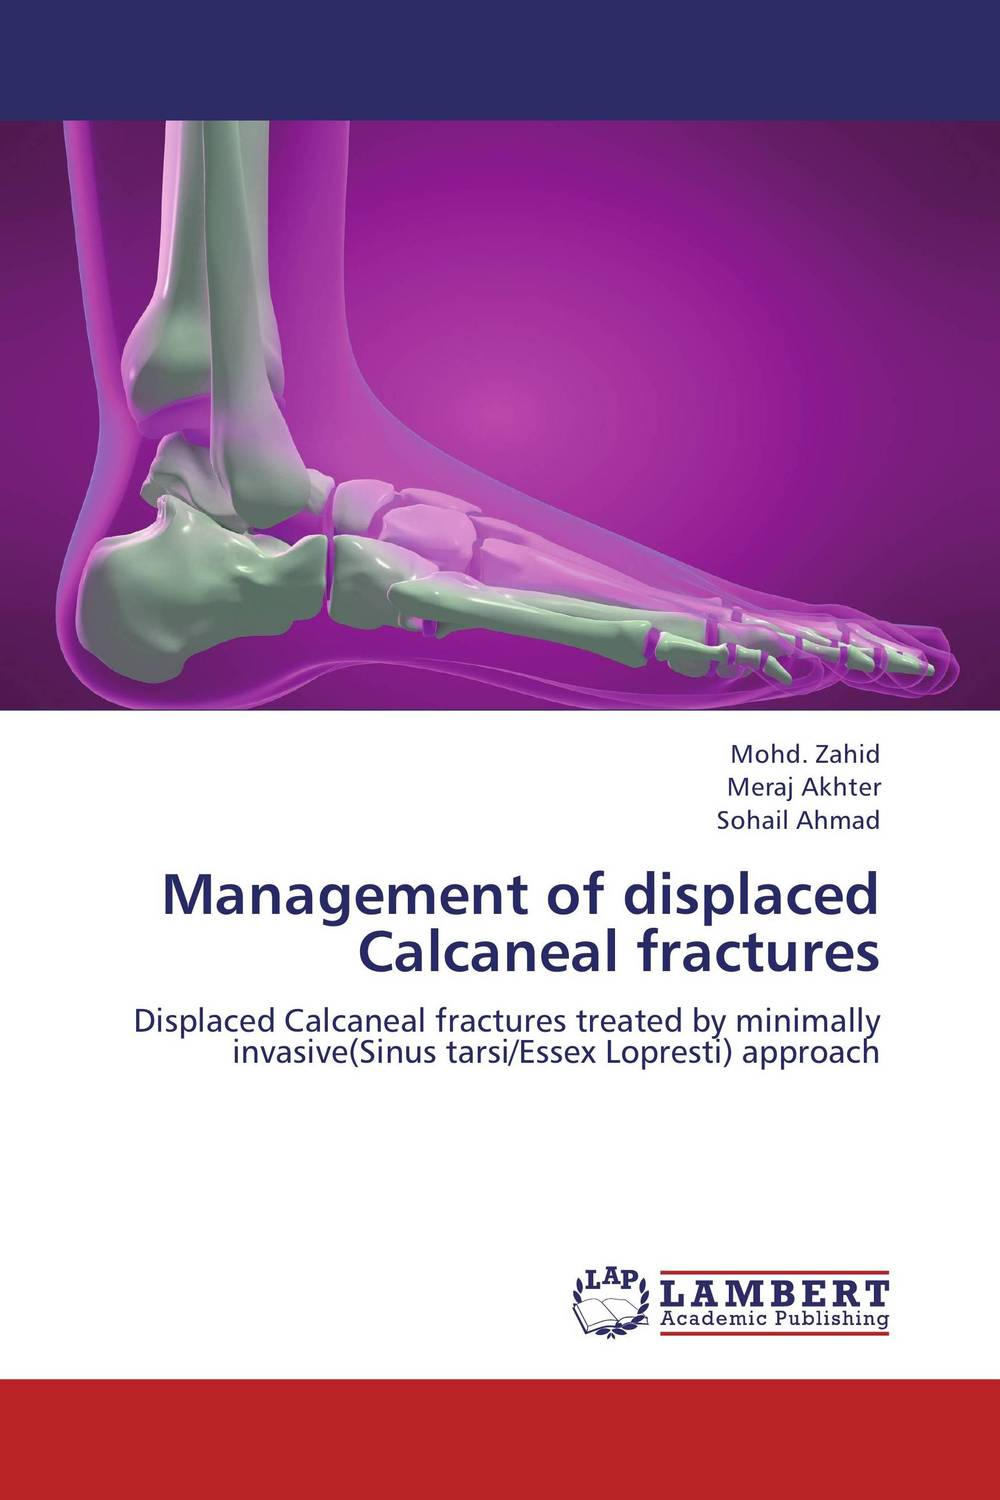 цена на Management of displaced Calcaneal fractures